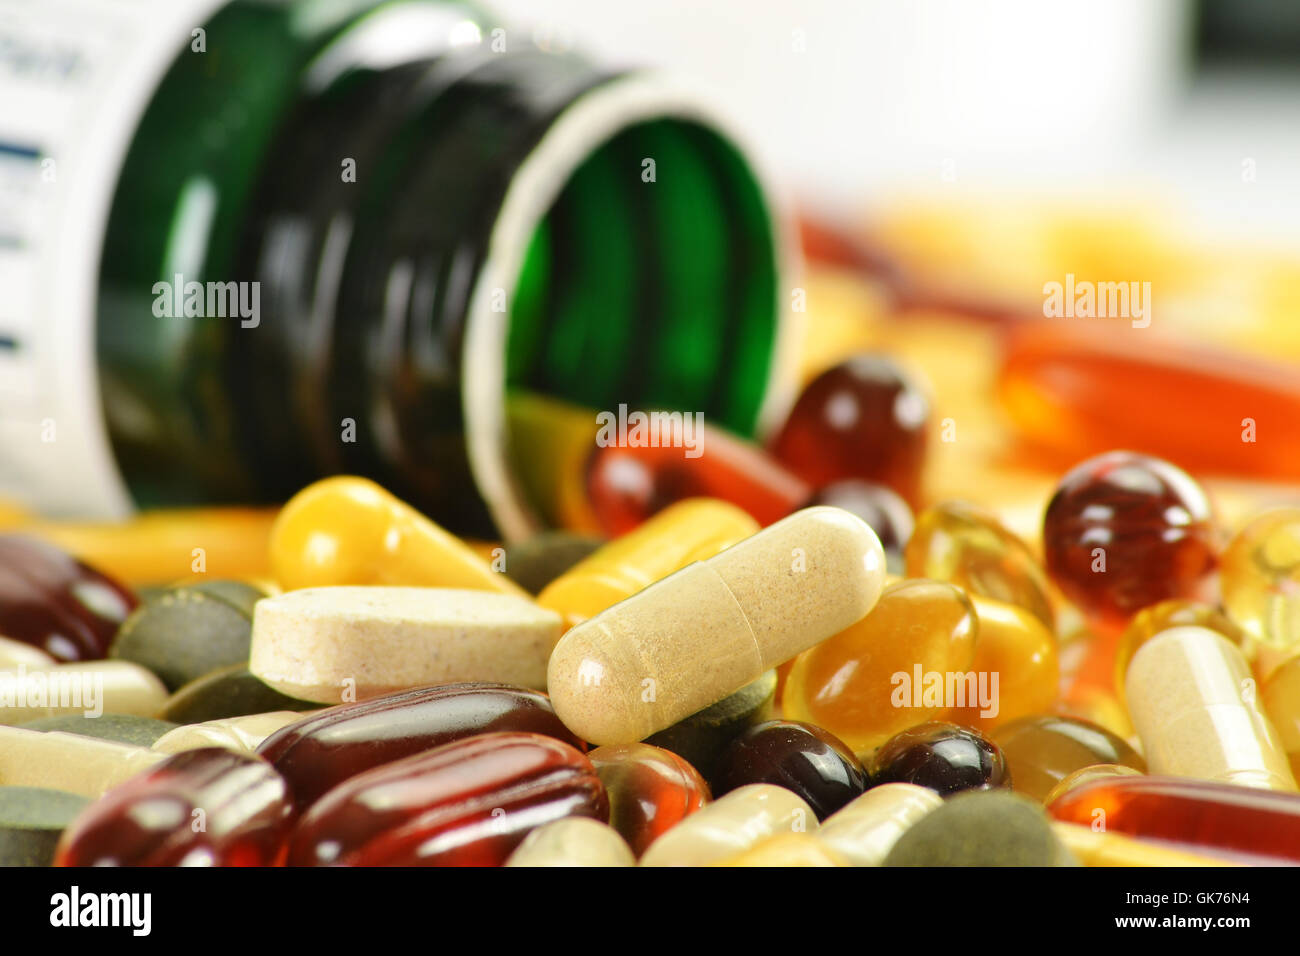 material drug anaesthetic - Stock Image